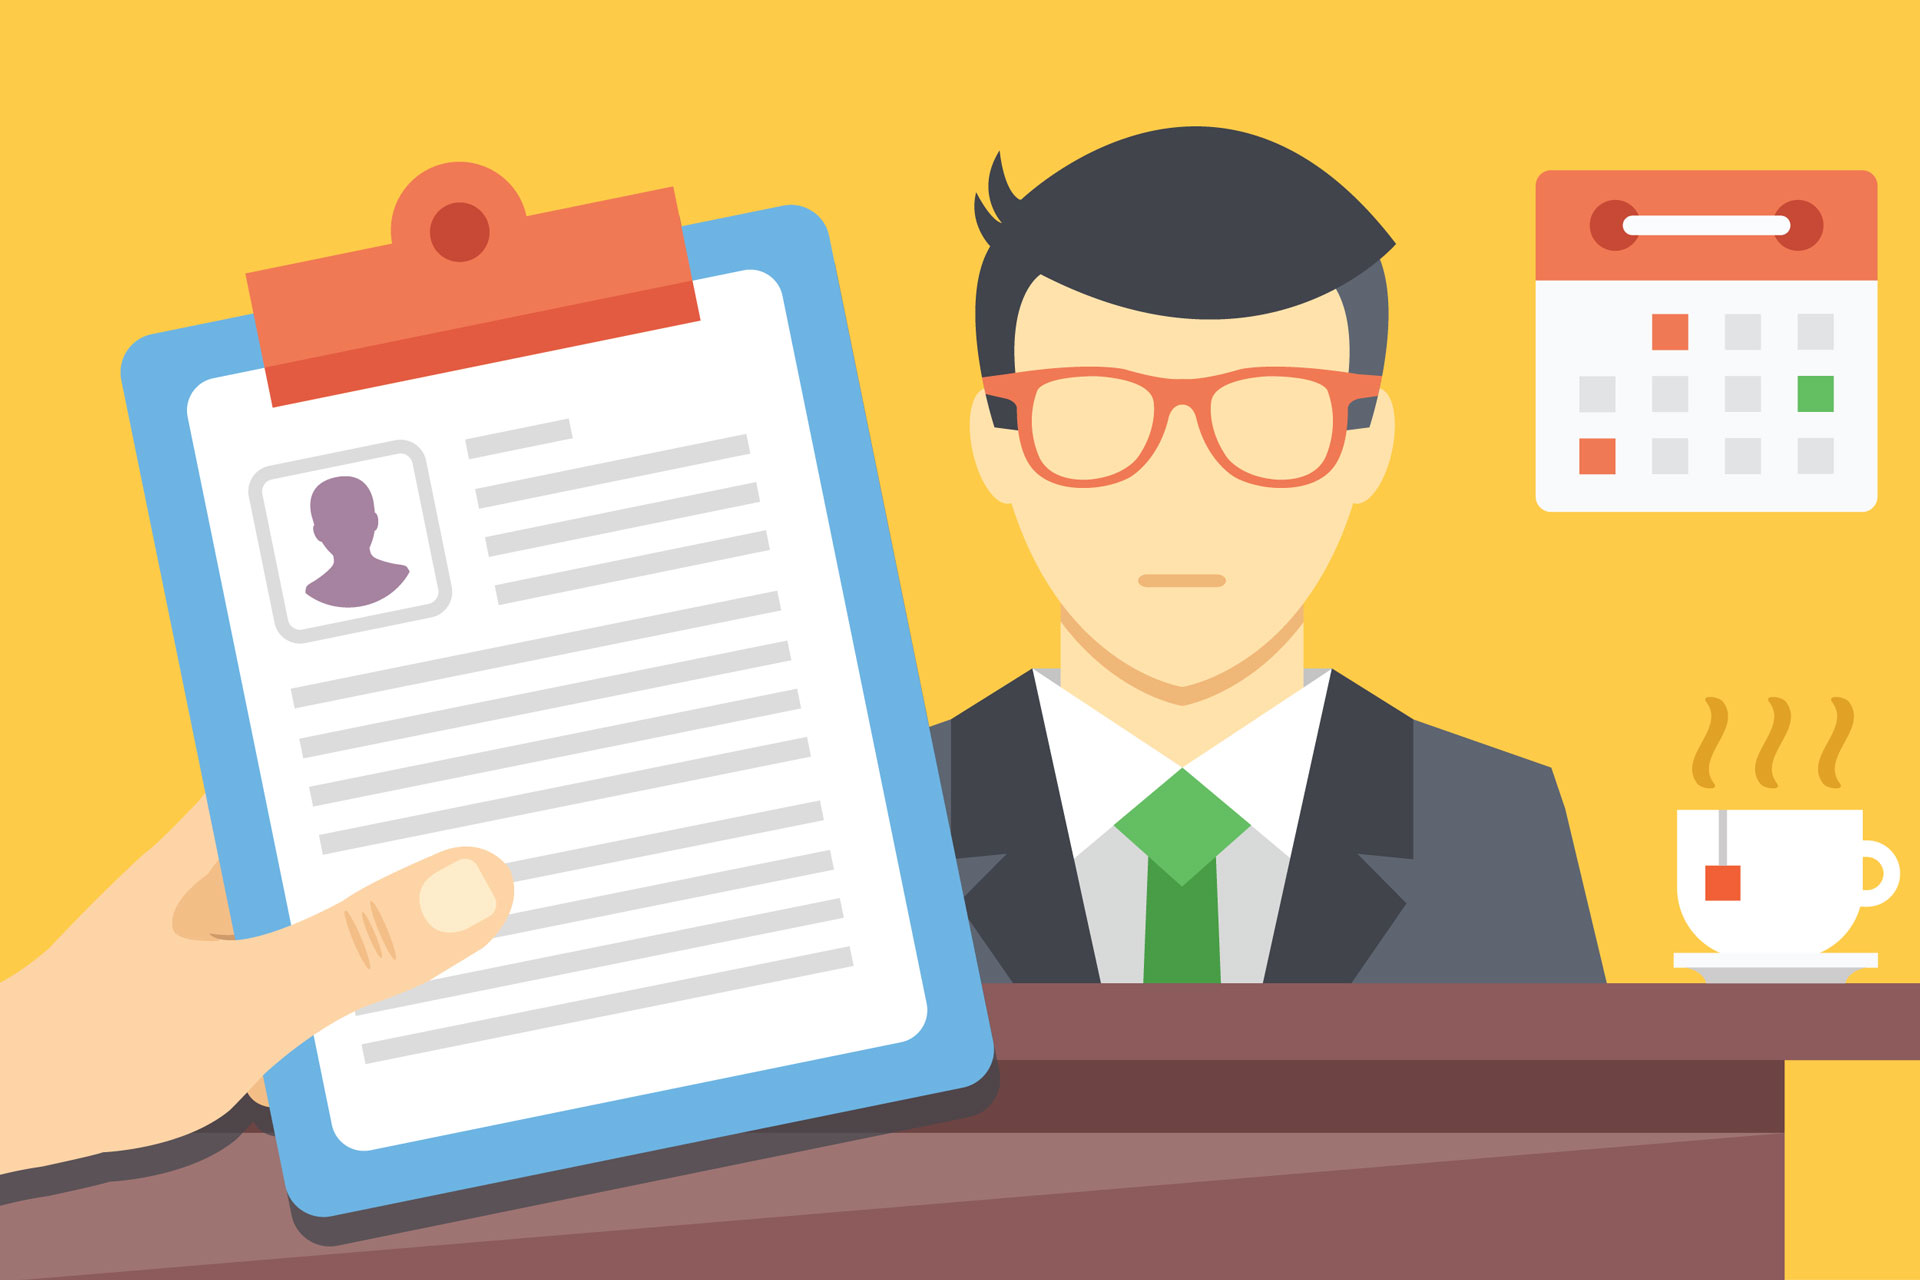 5 Benefits for Students Who Work Part-Time Jobs